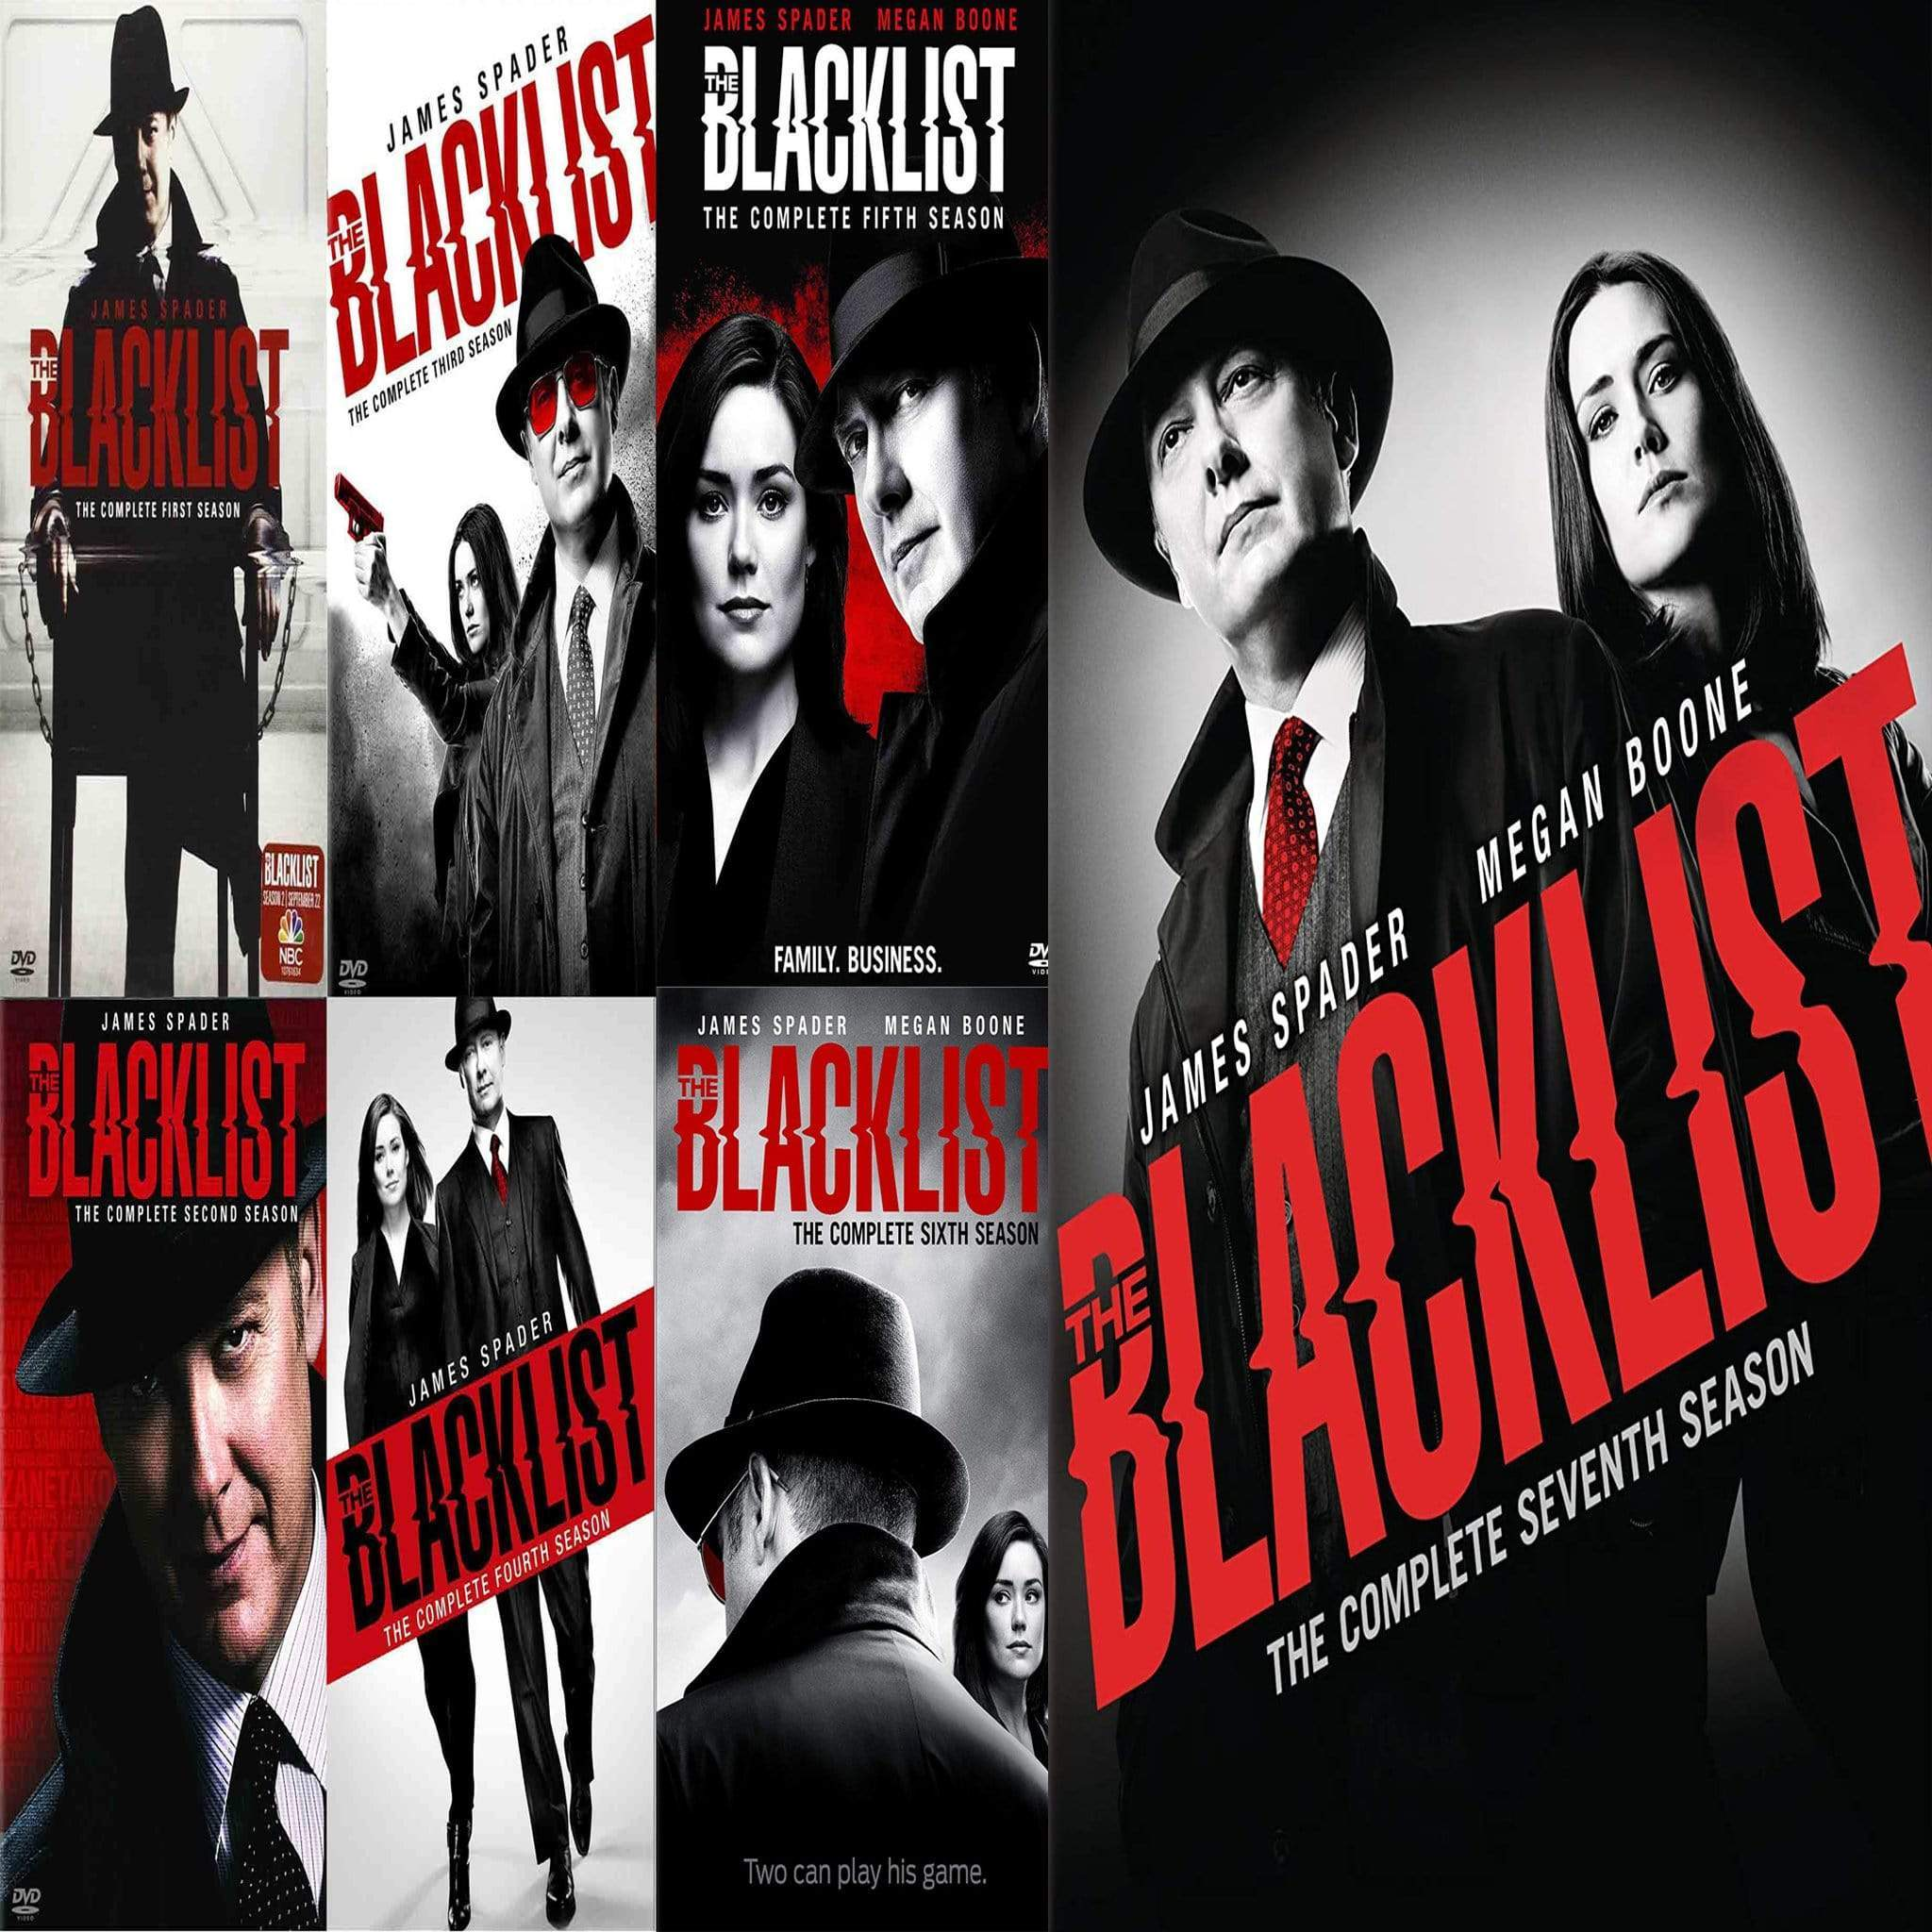 The Blacklist TV Series Seasons 1-7 DVD Set Sony DVDs & Blu-ray Discs > DVDs